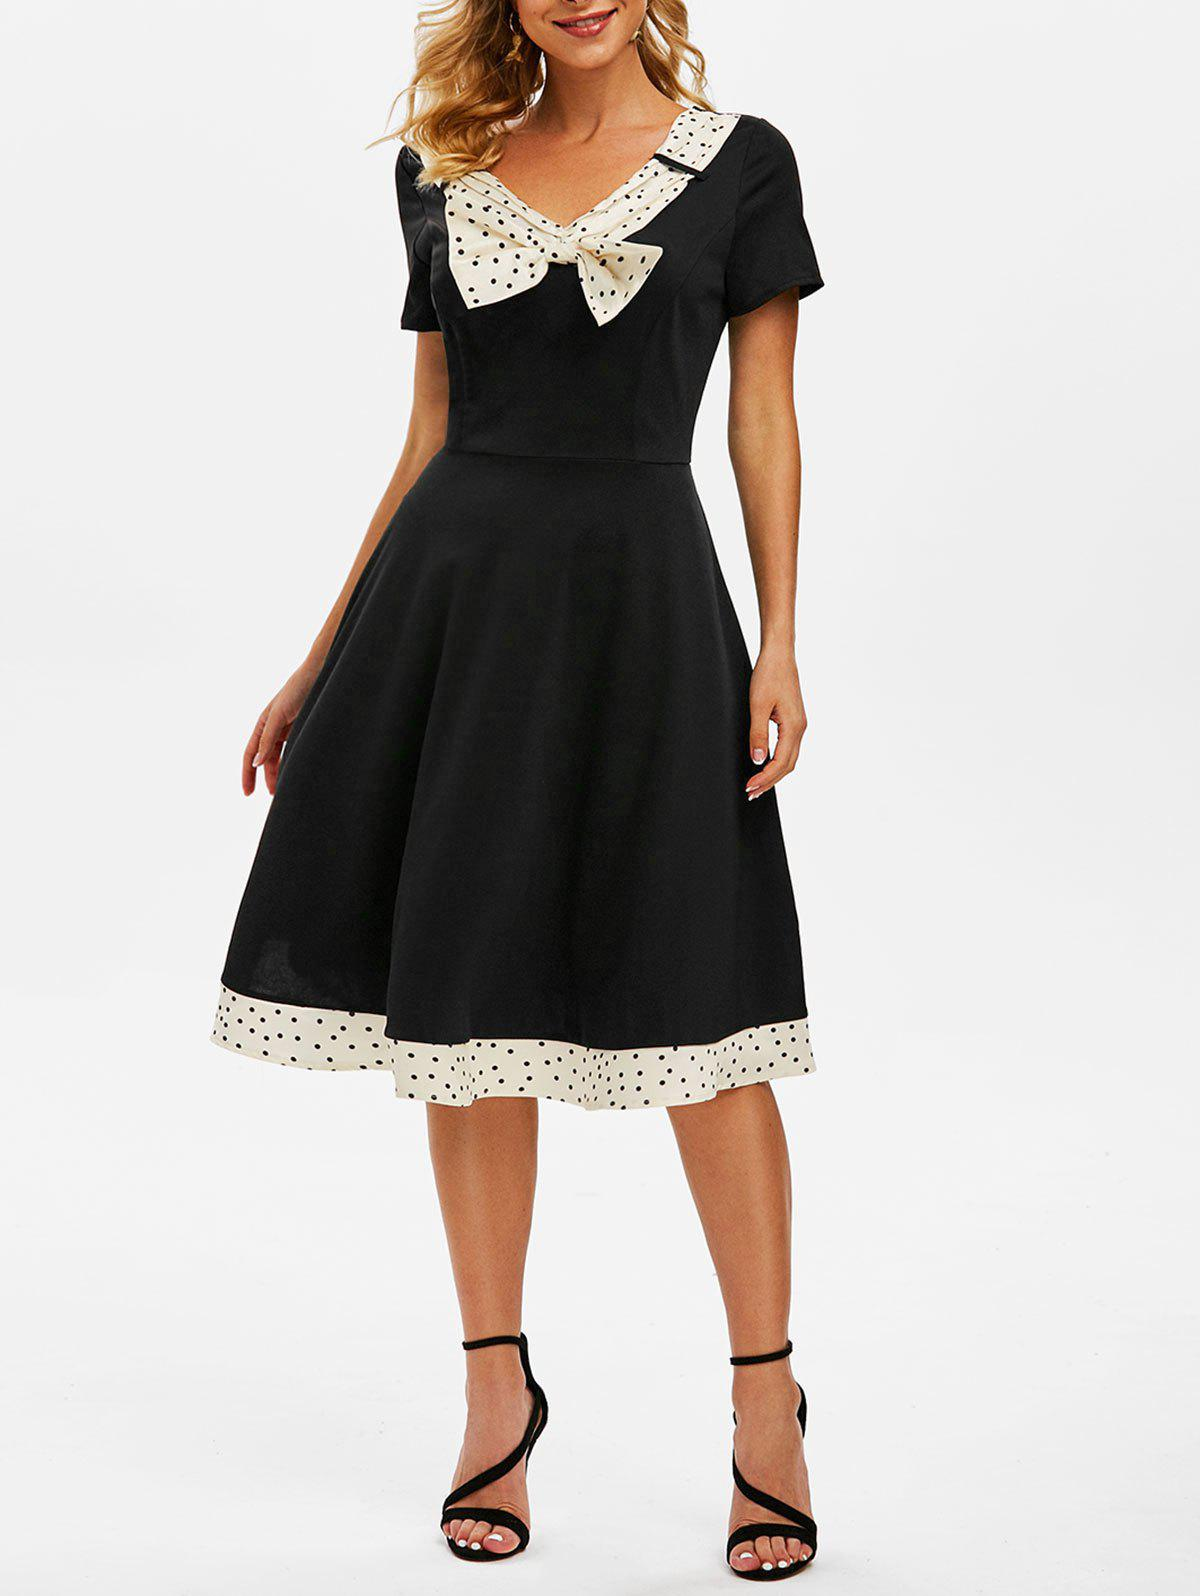 Store Polka Dot Bowknot V Neck Vintage Dress